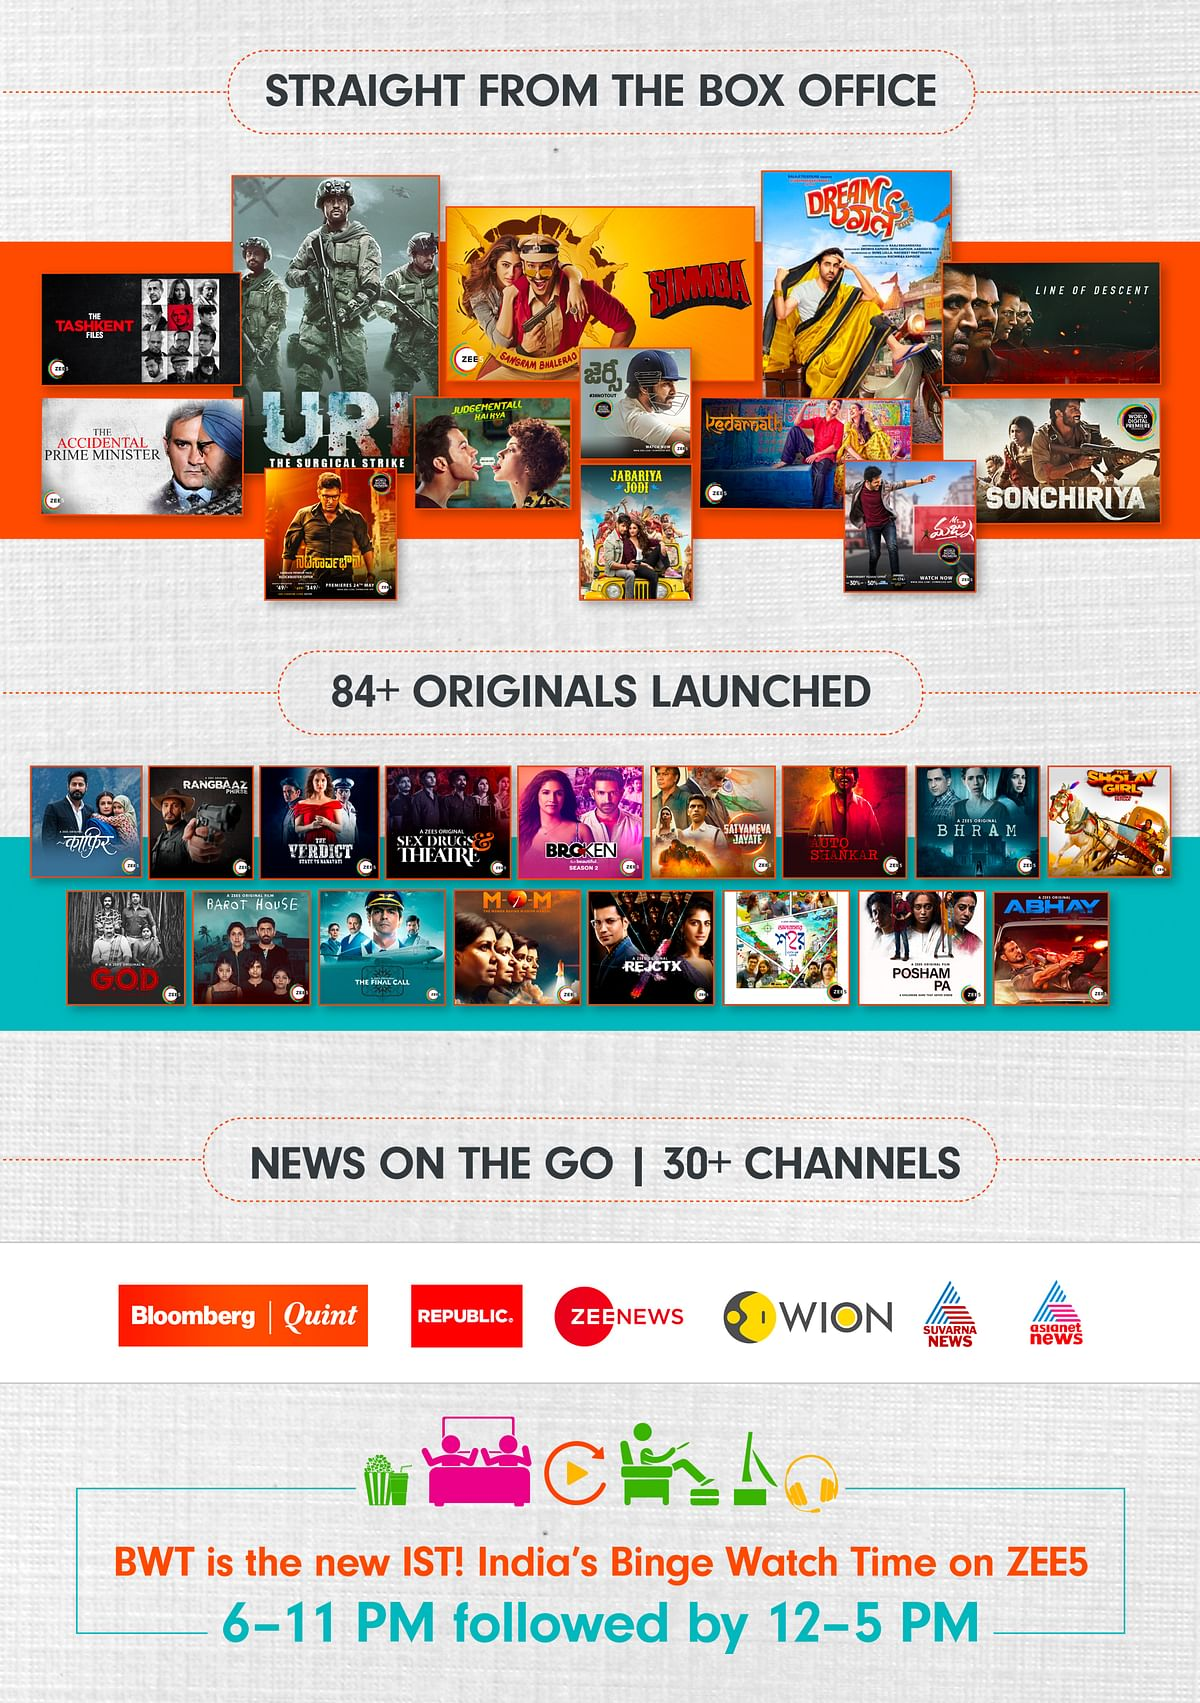 10 Reasons Why India Fell in Love With ZEE5 in 2019